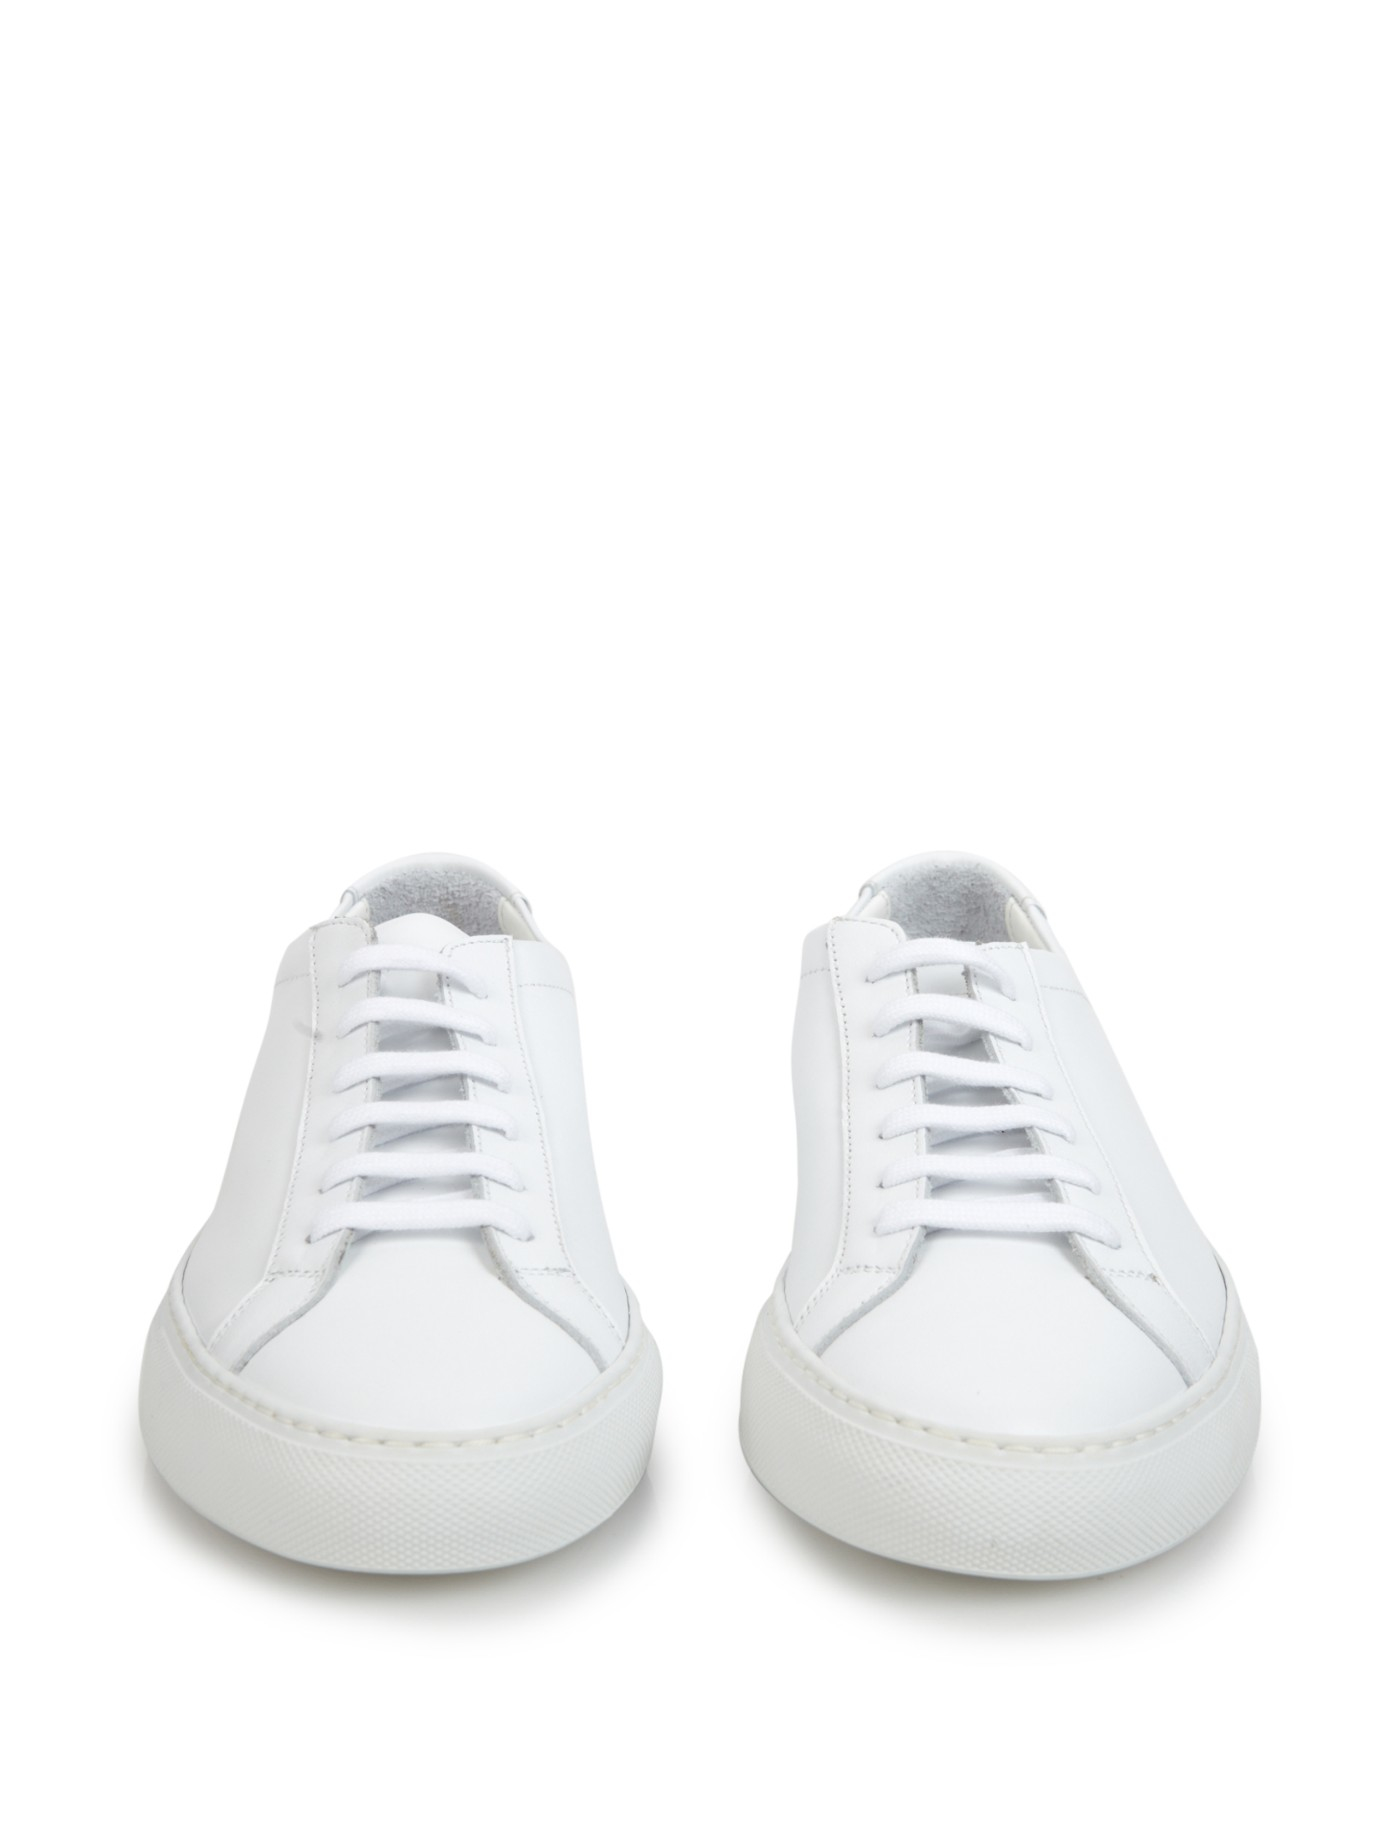 Common Projects Achilles Original Leather Low-Top Sneakers in White